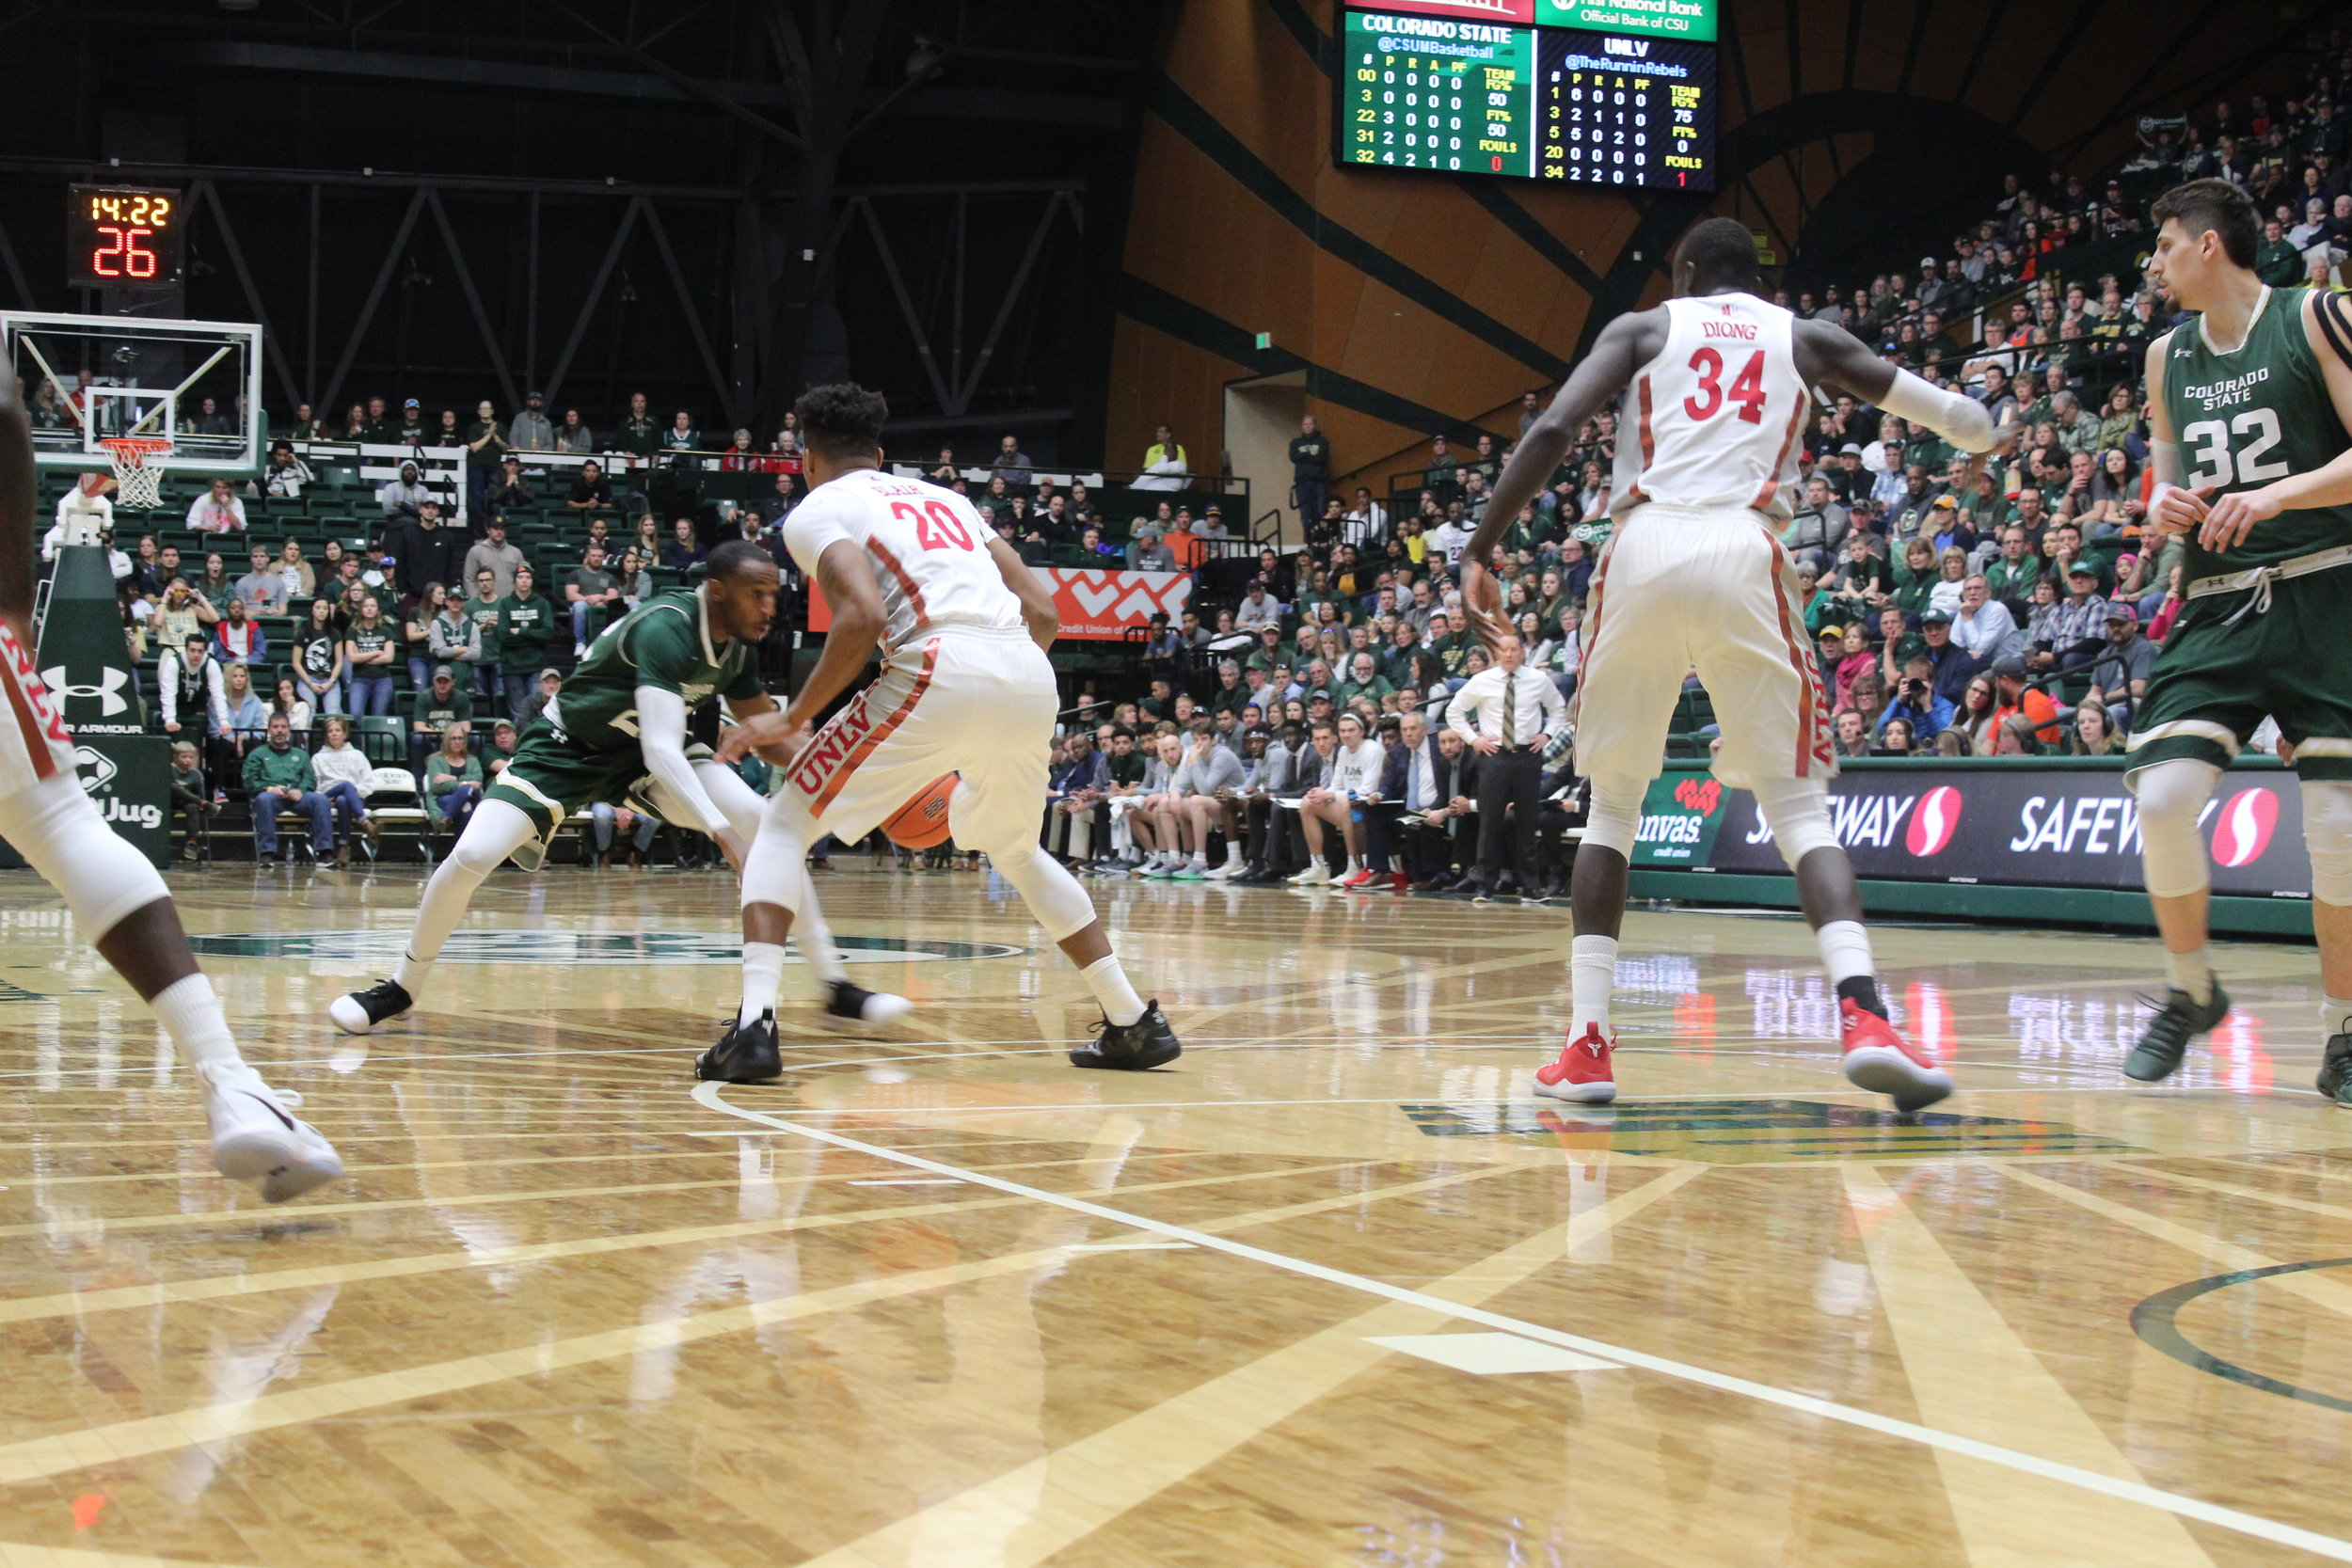 J.D. Paige crosses up a UNLV defender in the lane.